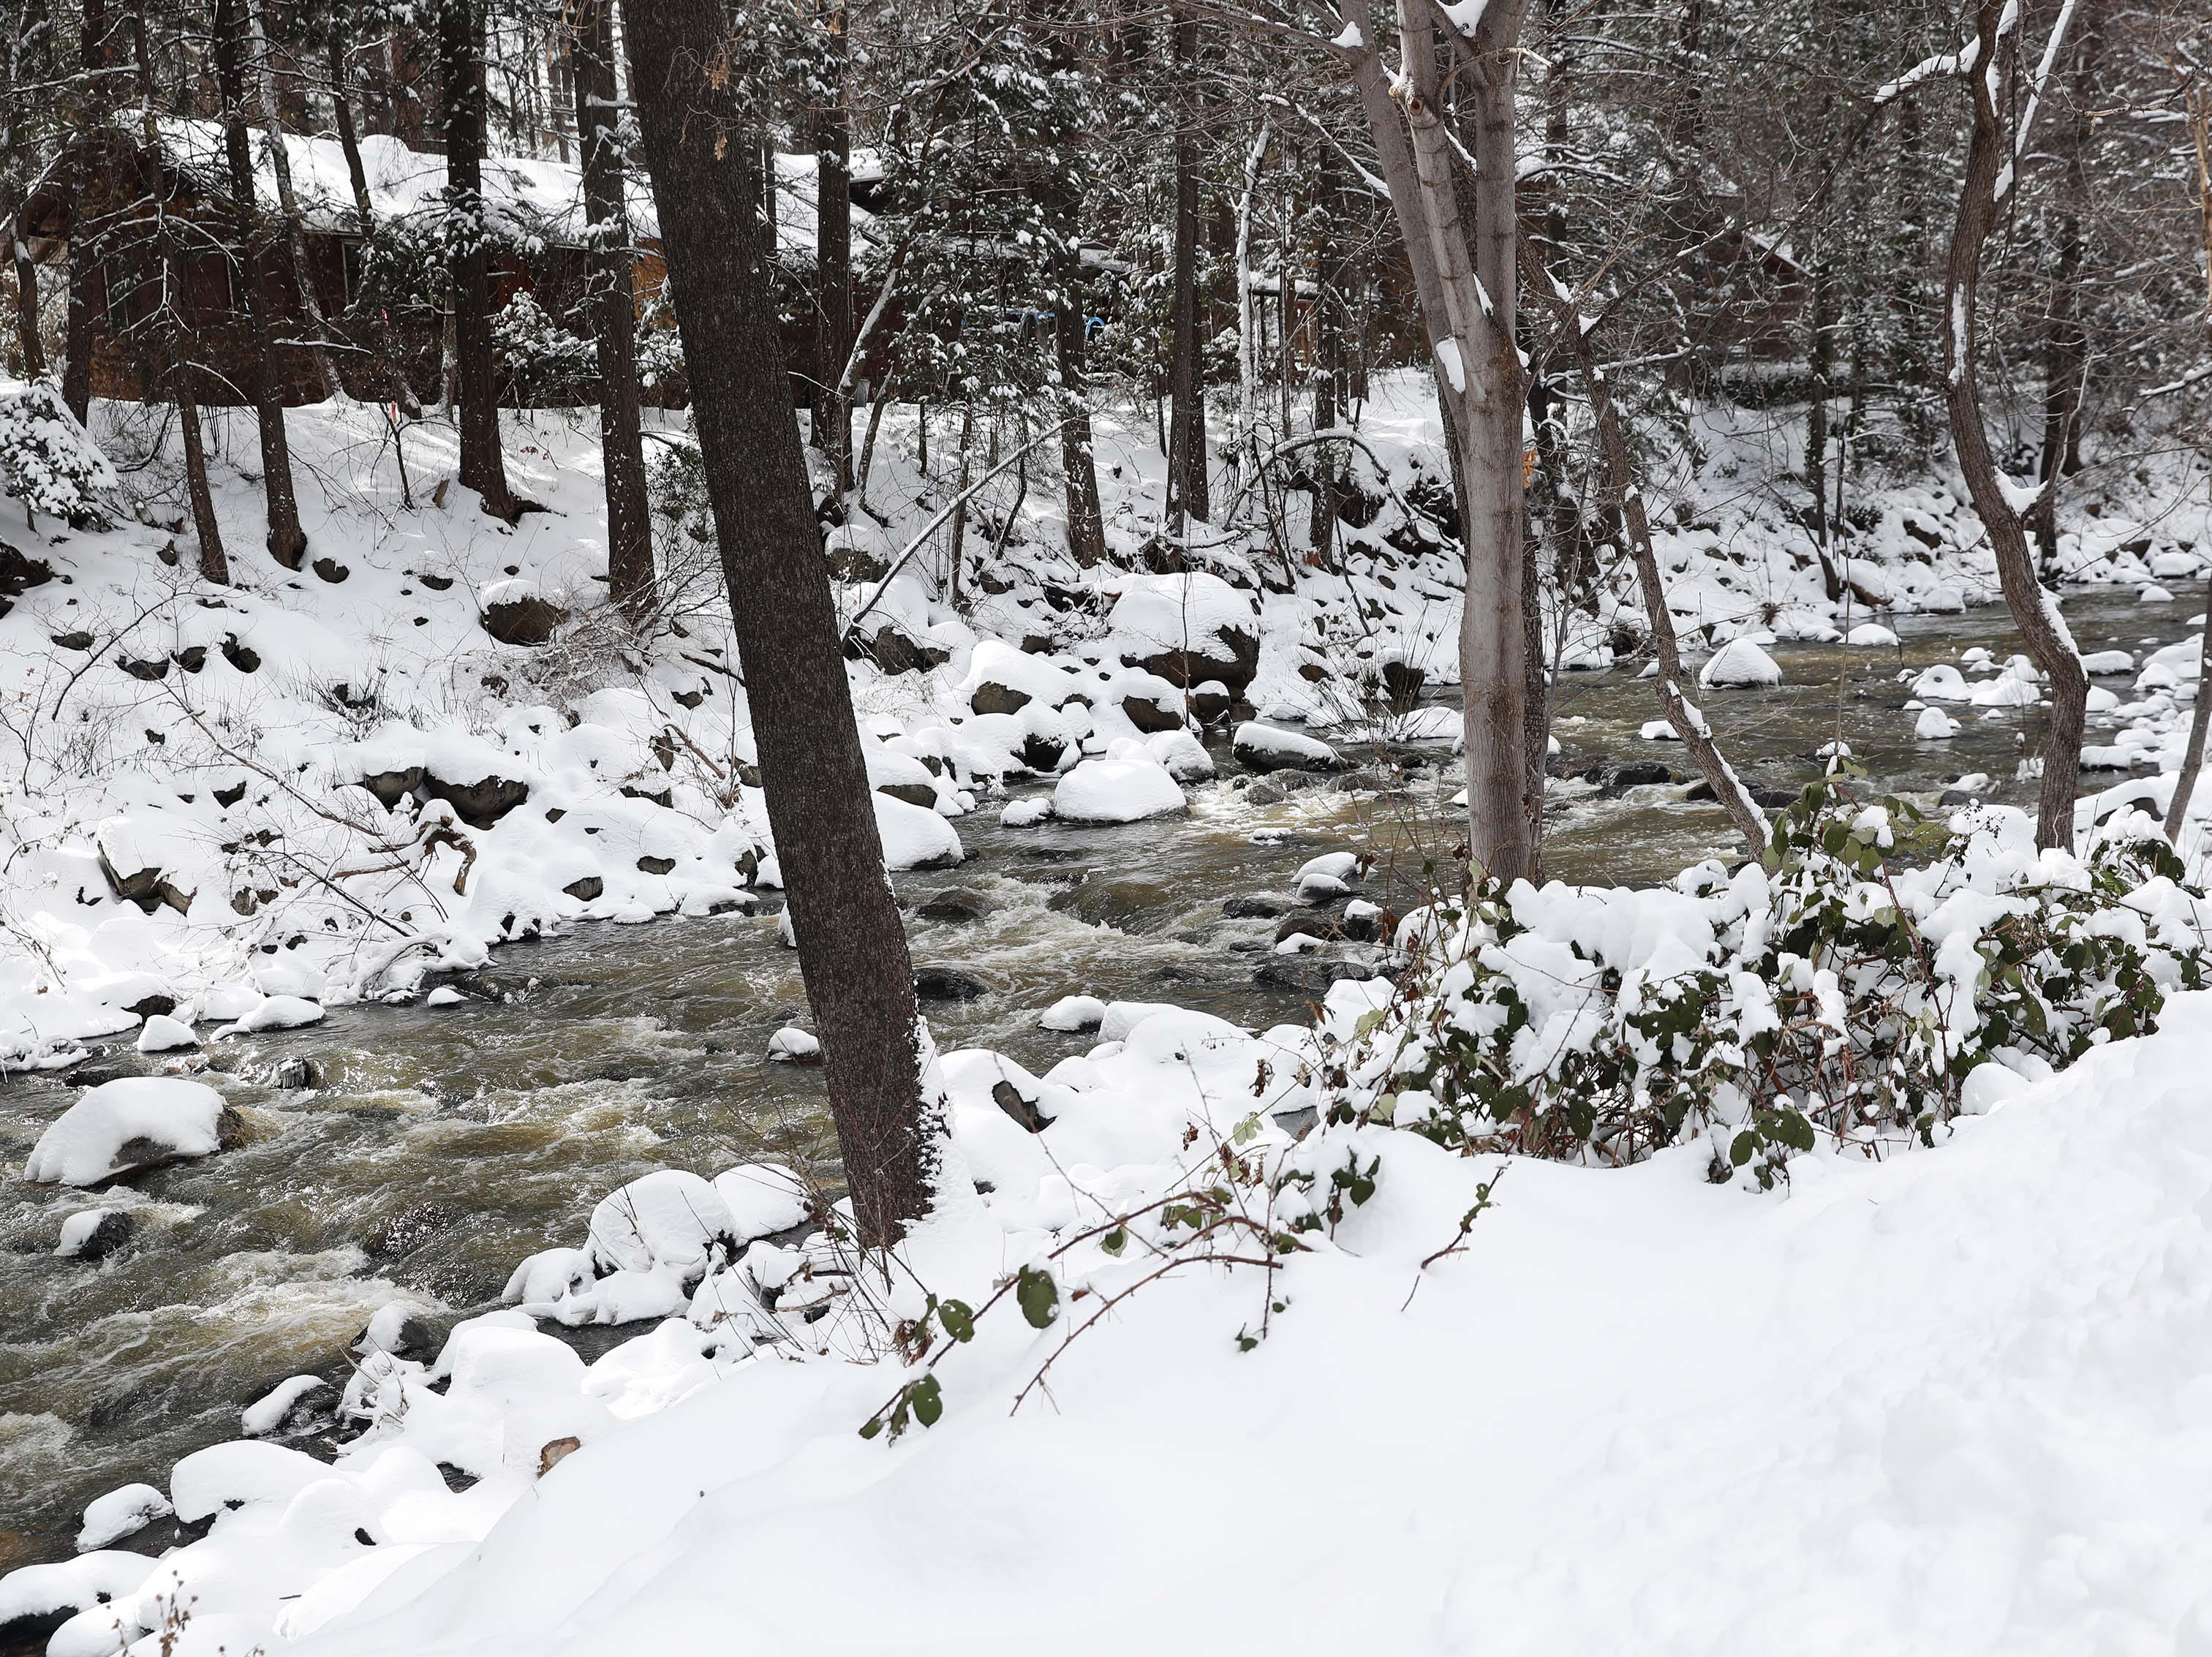 Snow covers the banks of Oak Creek in Oak Creek Canyon Feb. 18, 2019.